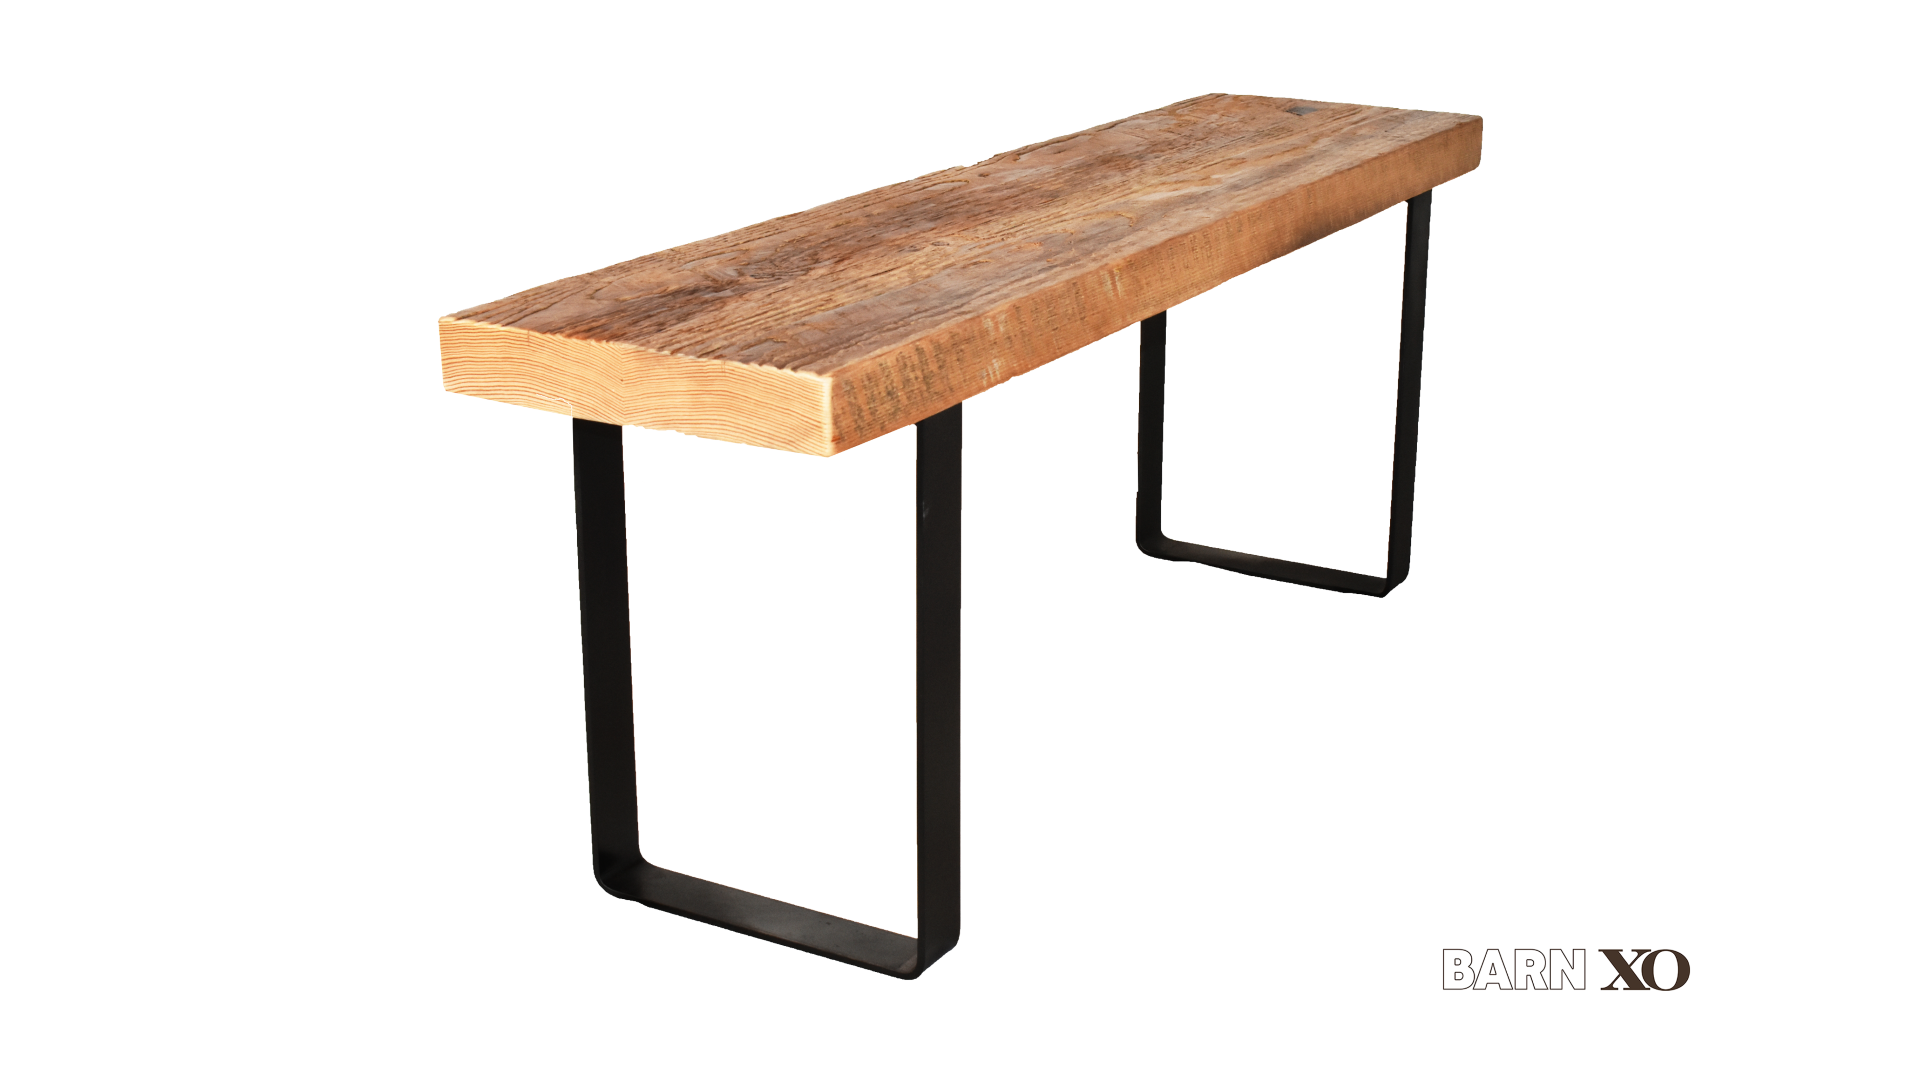 Barn Xo Reclaimed Wood Bench With U Shaped Leg Base